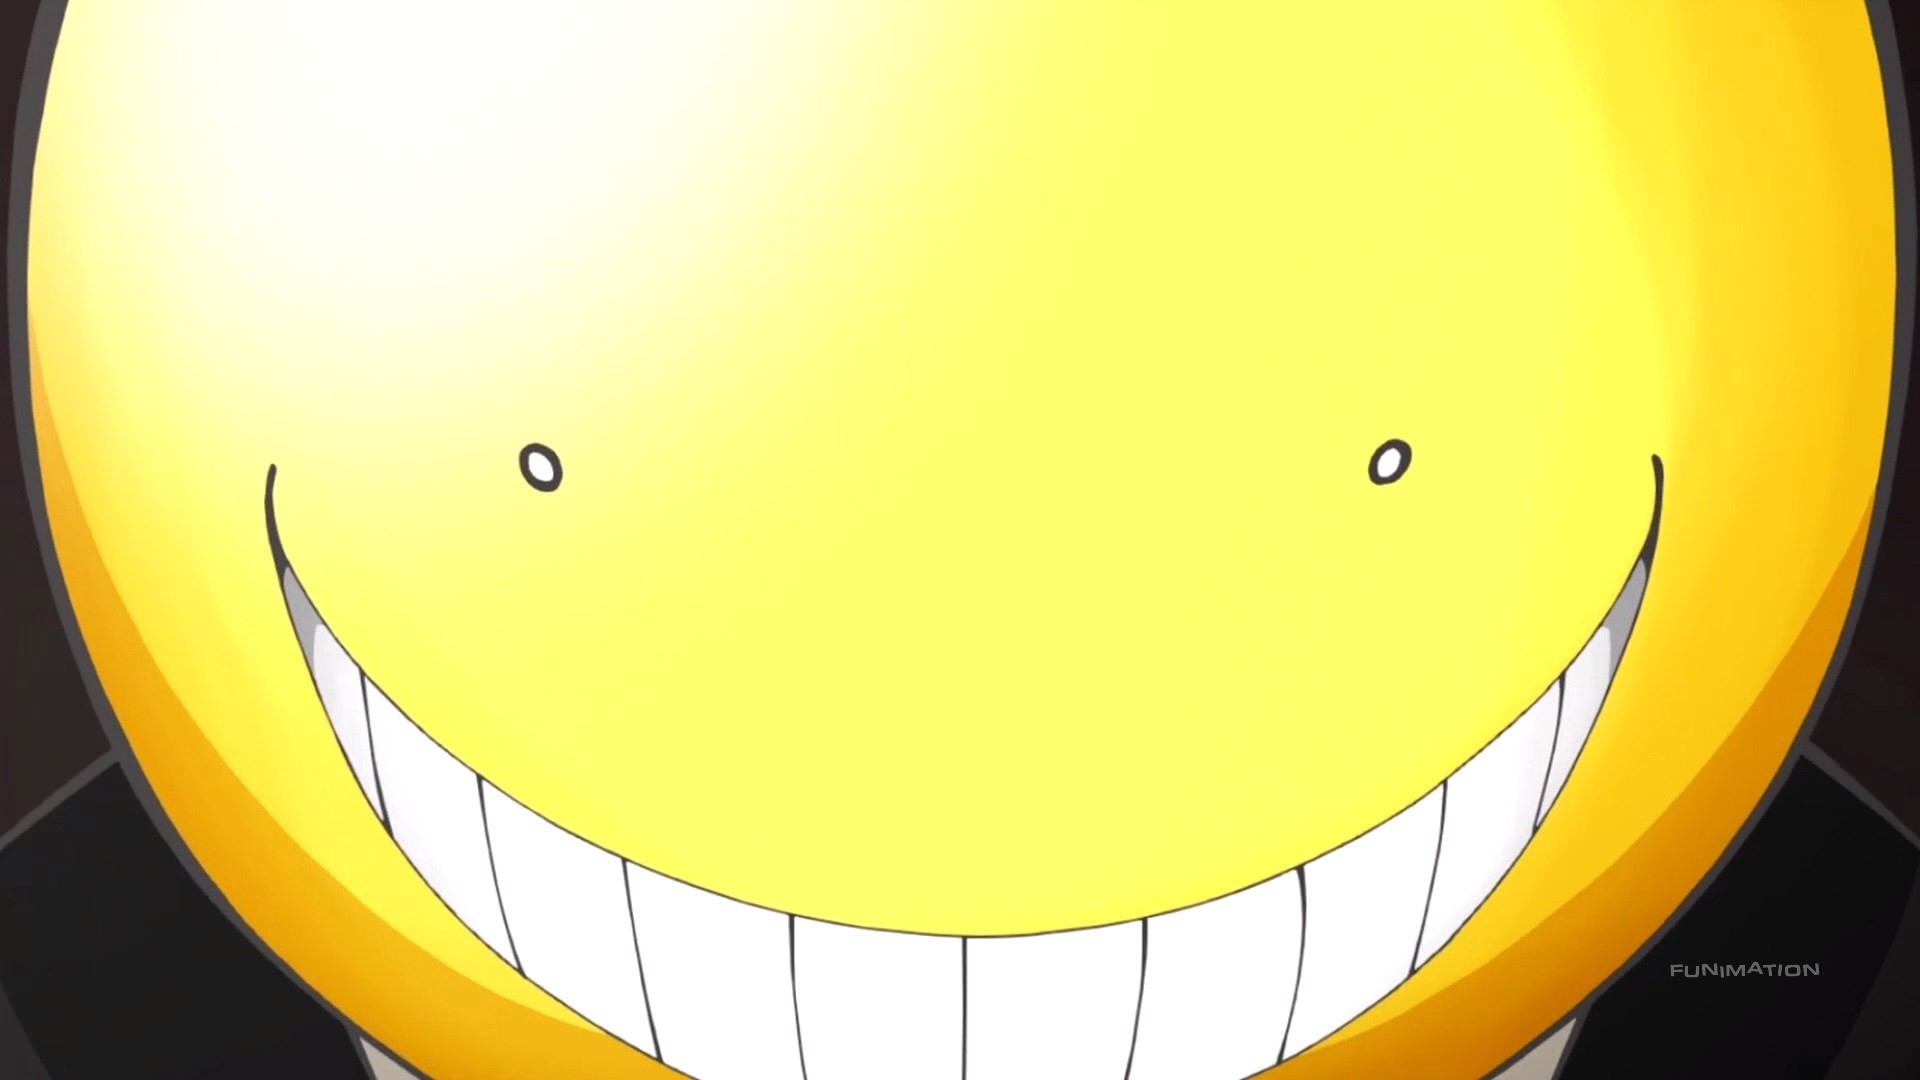 1920x1080 #1898933, assassination classroom category - widescreen wallpaper  assassination classroom